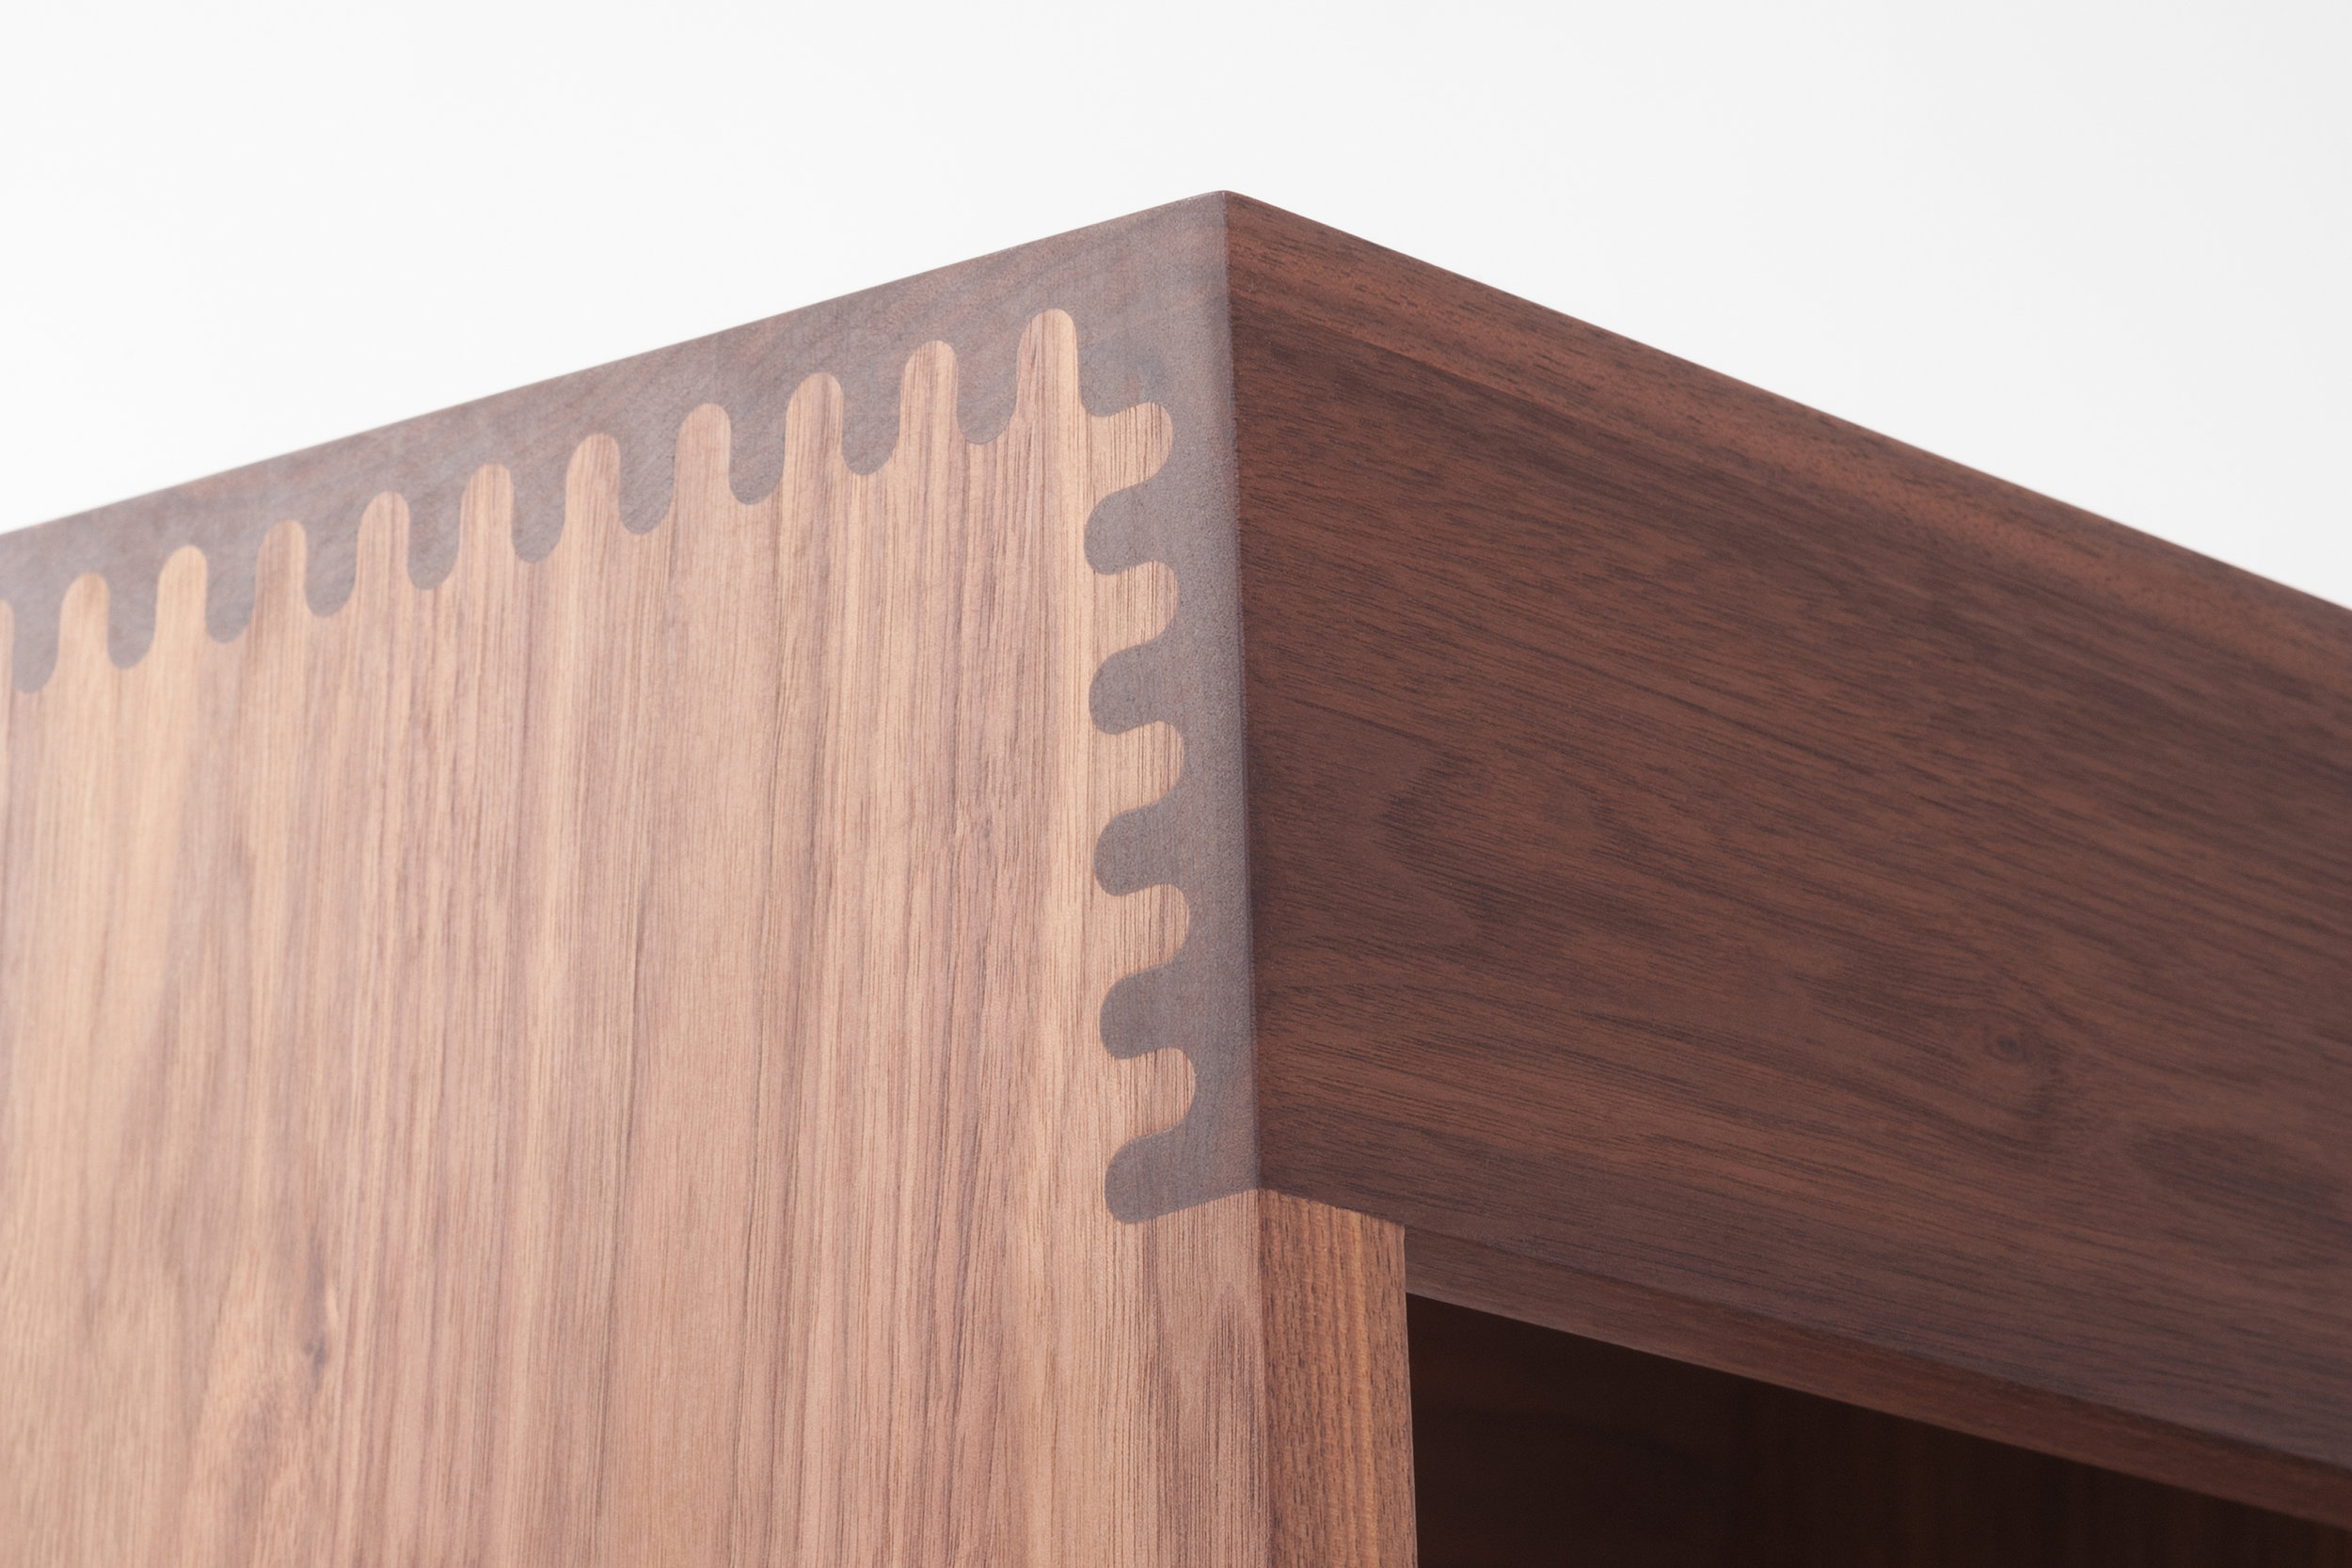 Tall Maia by Matthew Hilton in walnut - detail_3x2.jpg